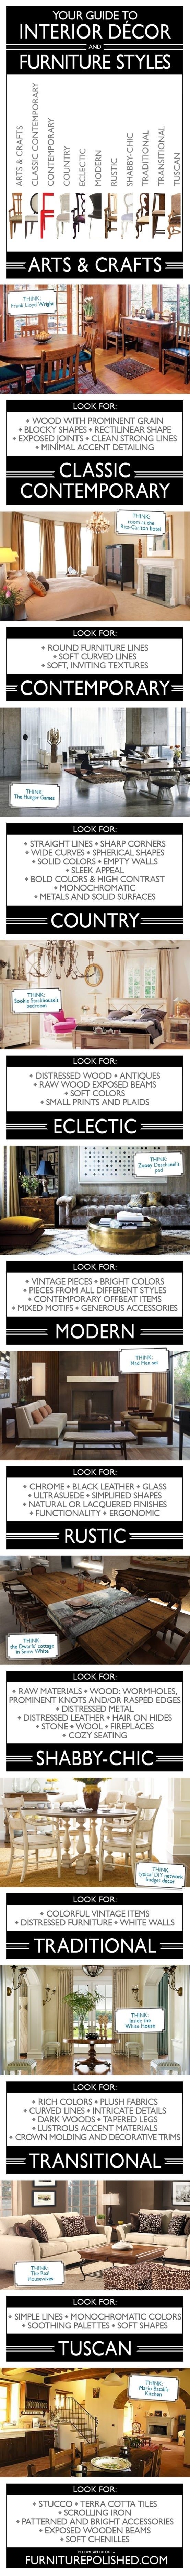 Interior Decor & Furniture Styles Guide @ Heavenly HomesHeavenly Homes